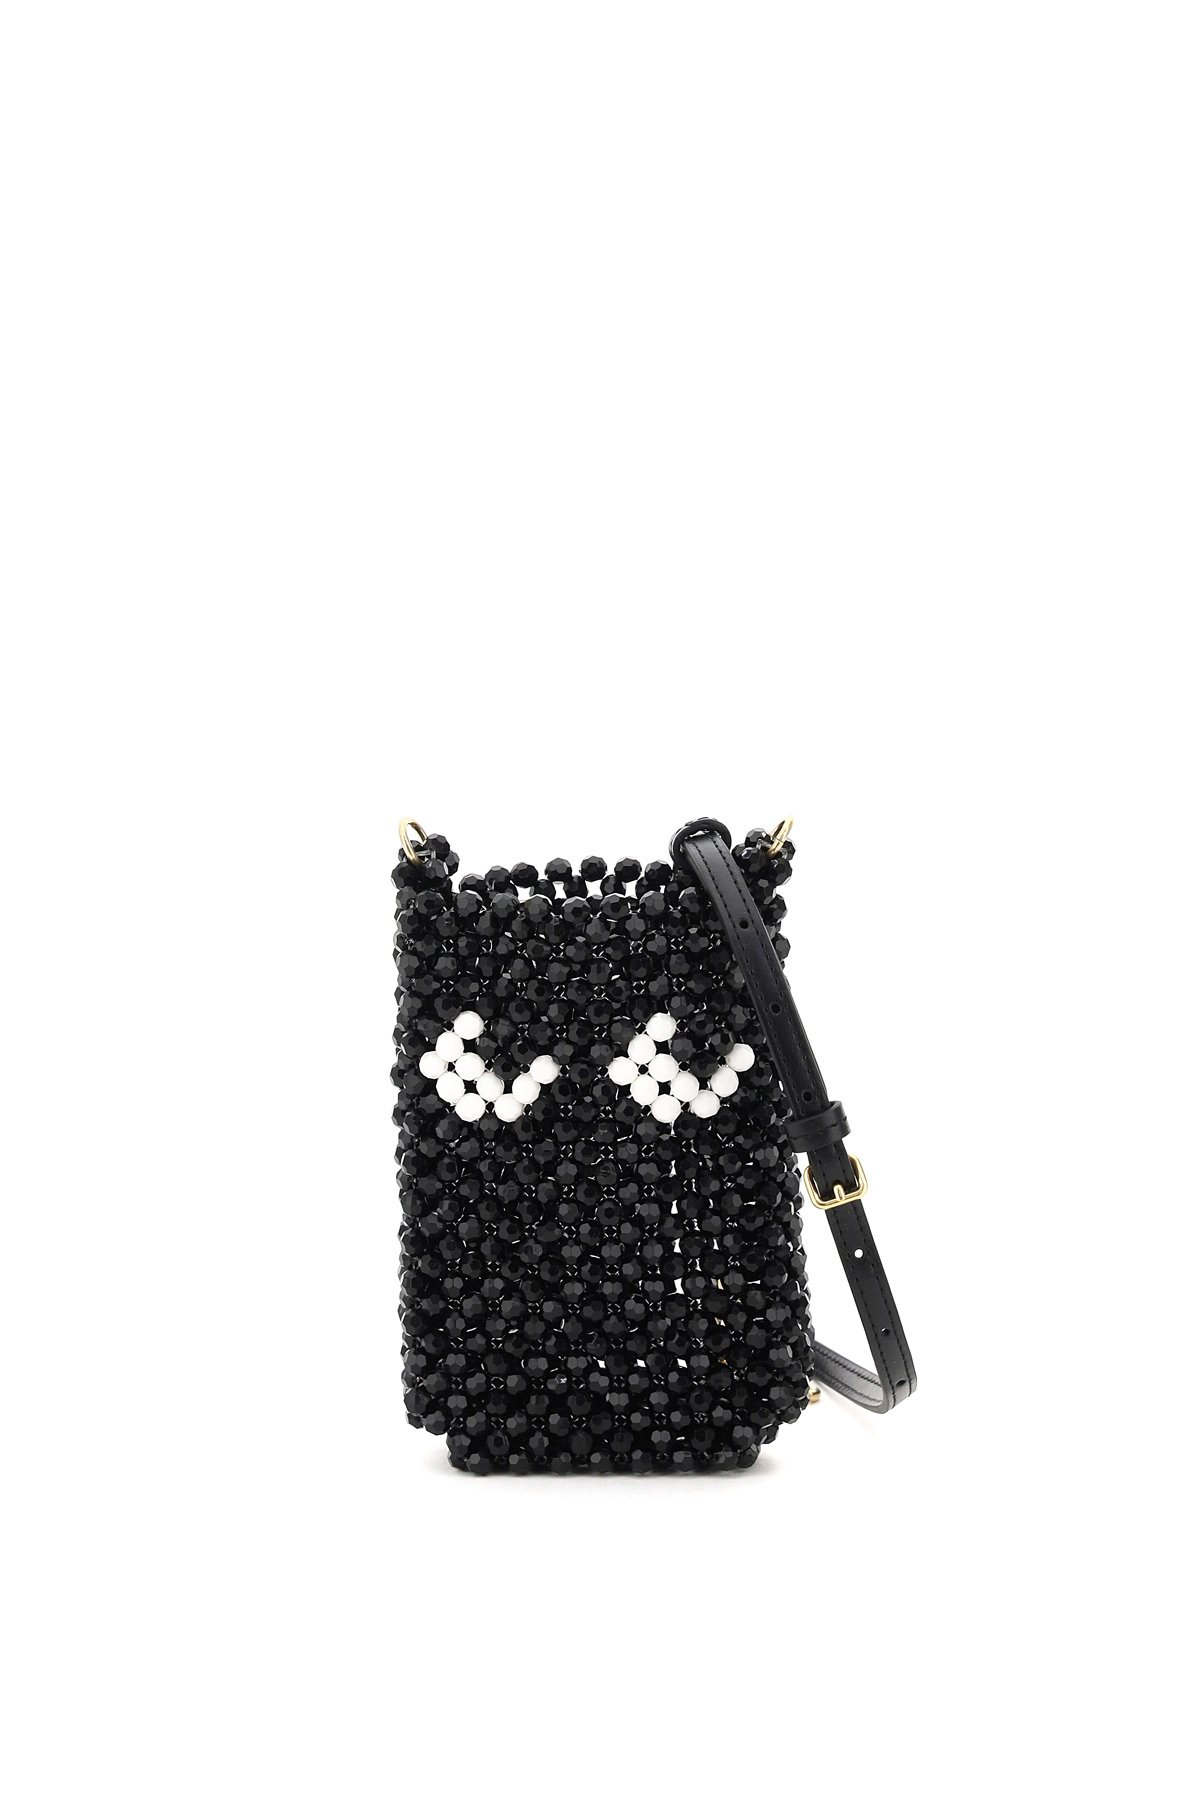 Anya hindmarch phone pouch con tracolla